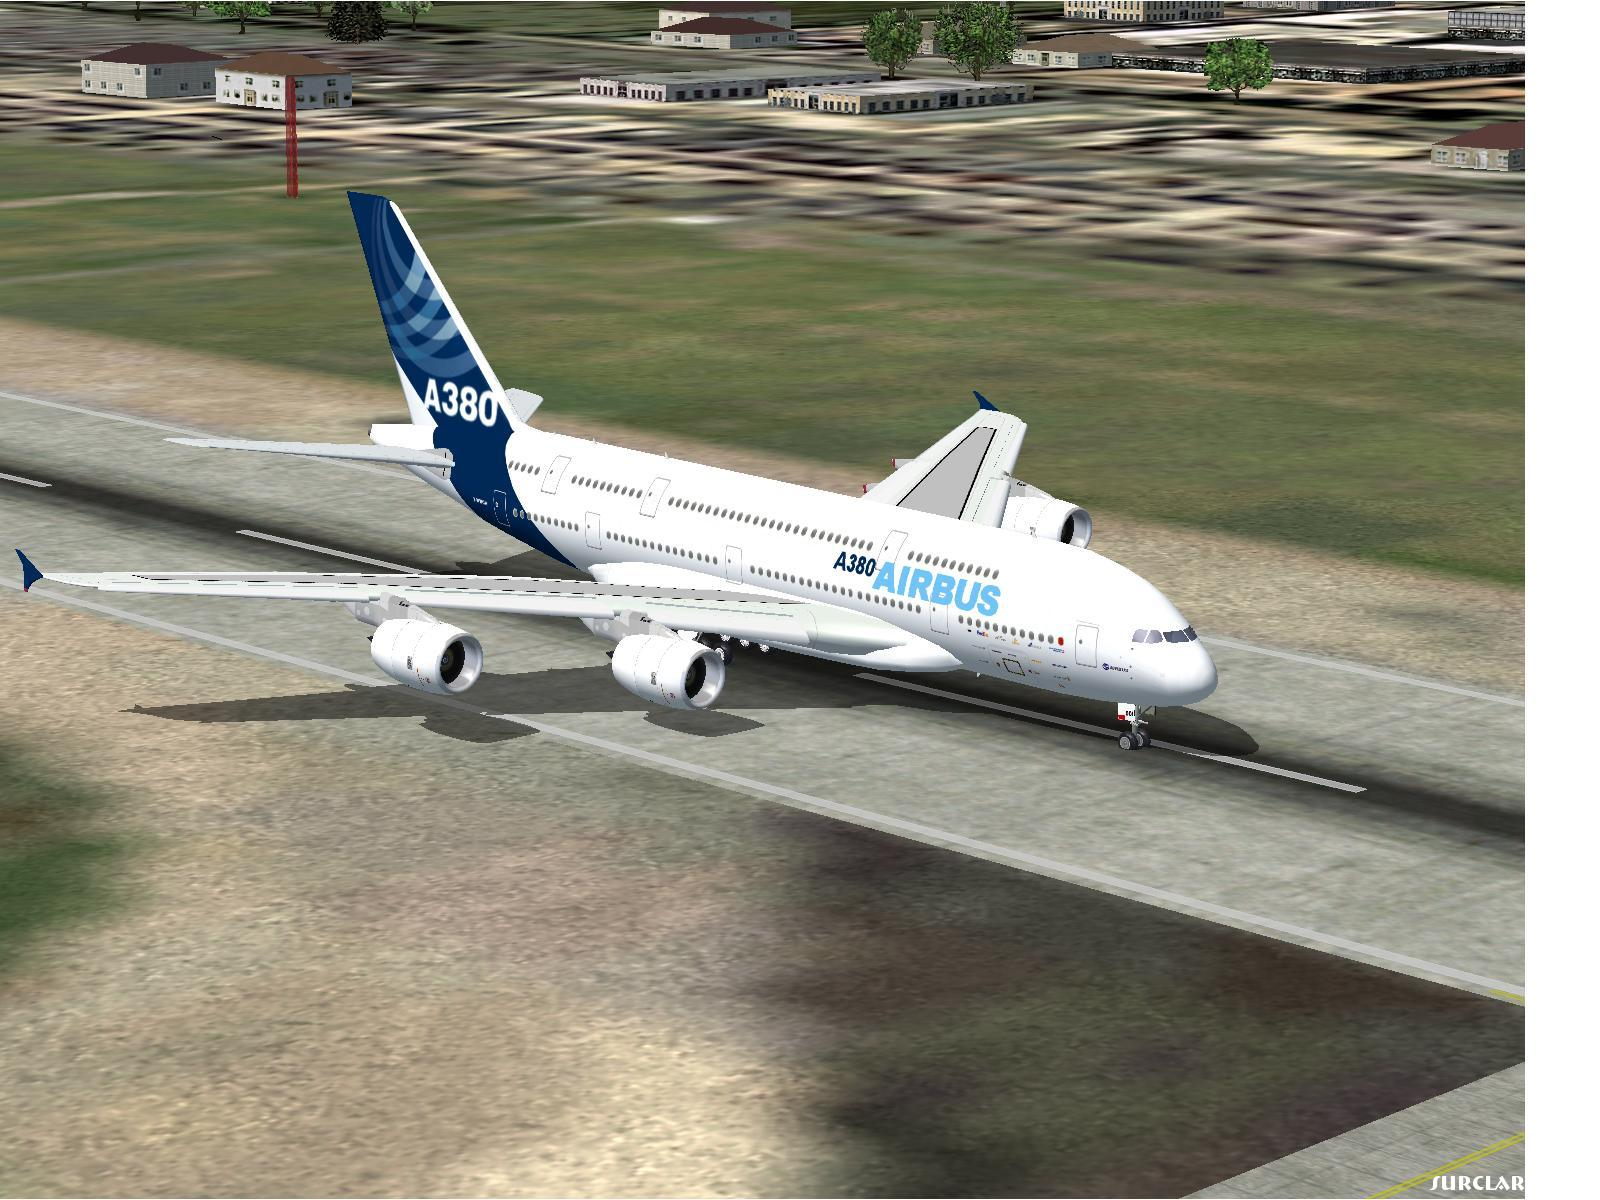 My A380 after landing - Photo 15806